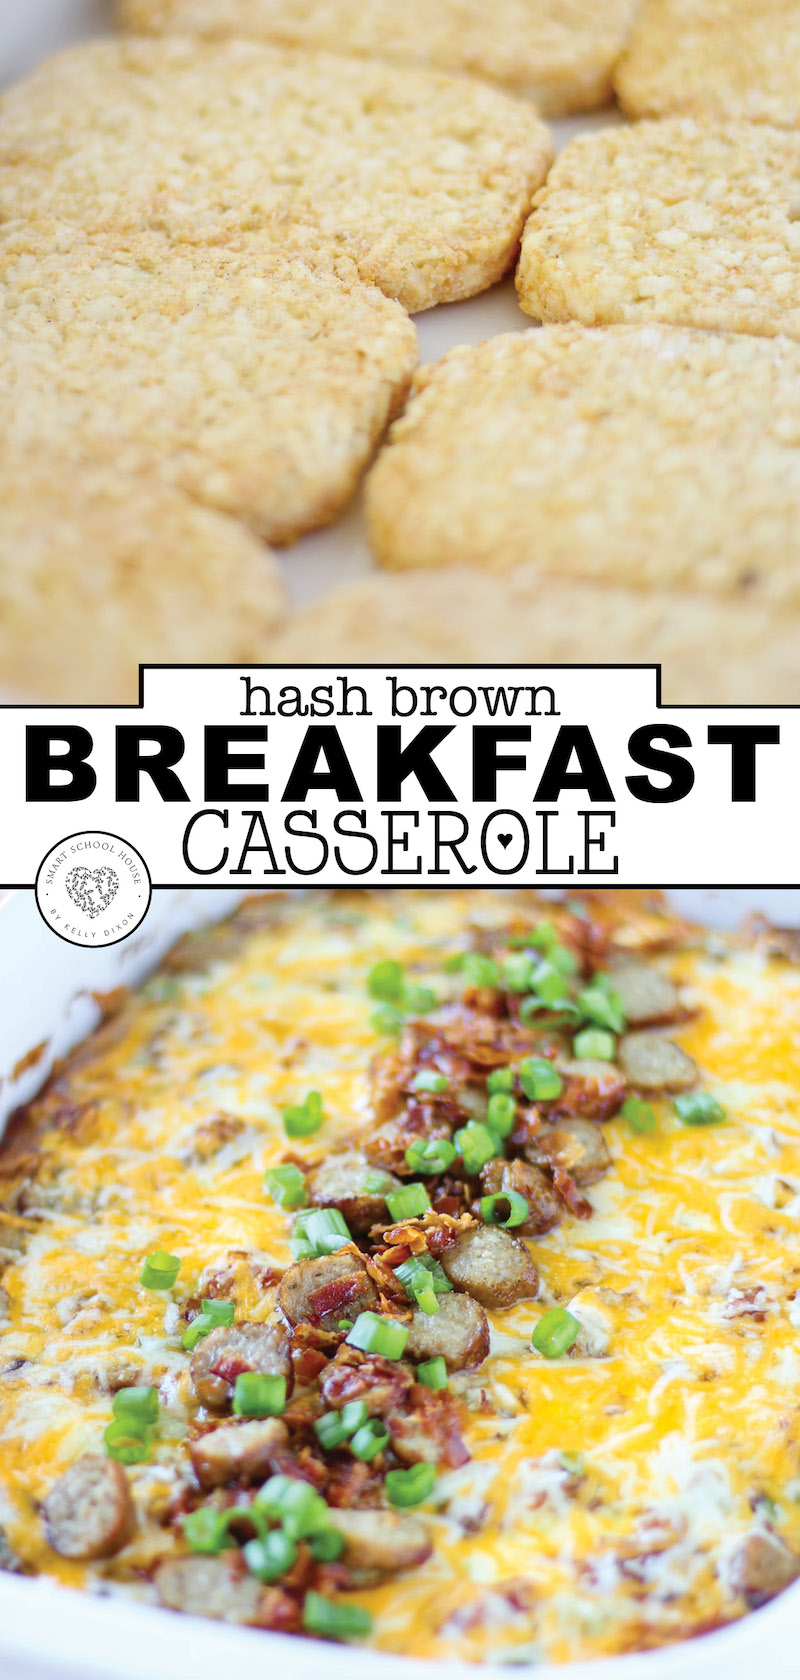 When you want to have something special for breakfast, try this hash brown breakfast casserole. It is a quick and easy recipe that is sure to please the whole family. Try this delicious new recipe tomorrow. #breakfast #recipe #breakfastcasserole #hashbrown #easybreakfast #eggs #smartschoolhouse